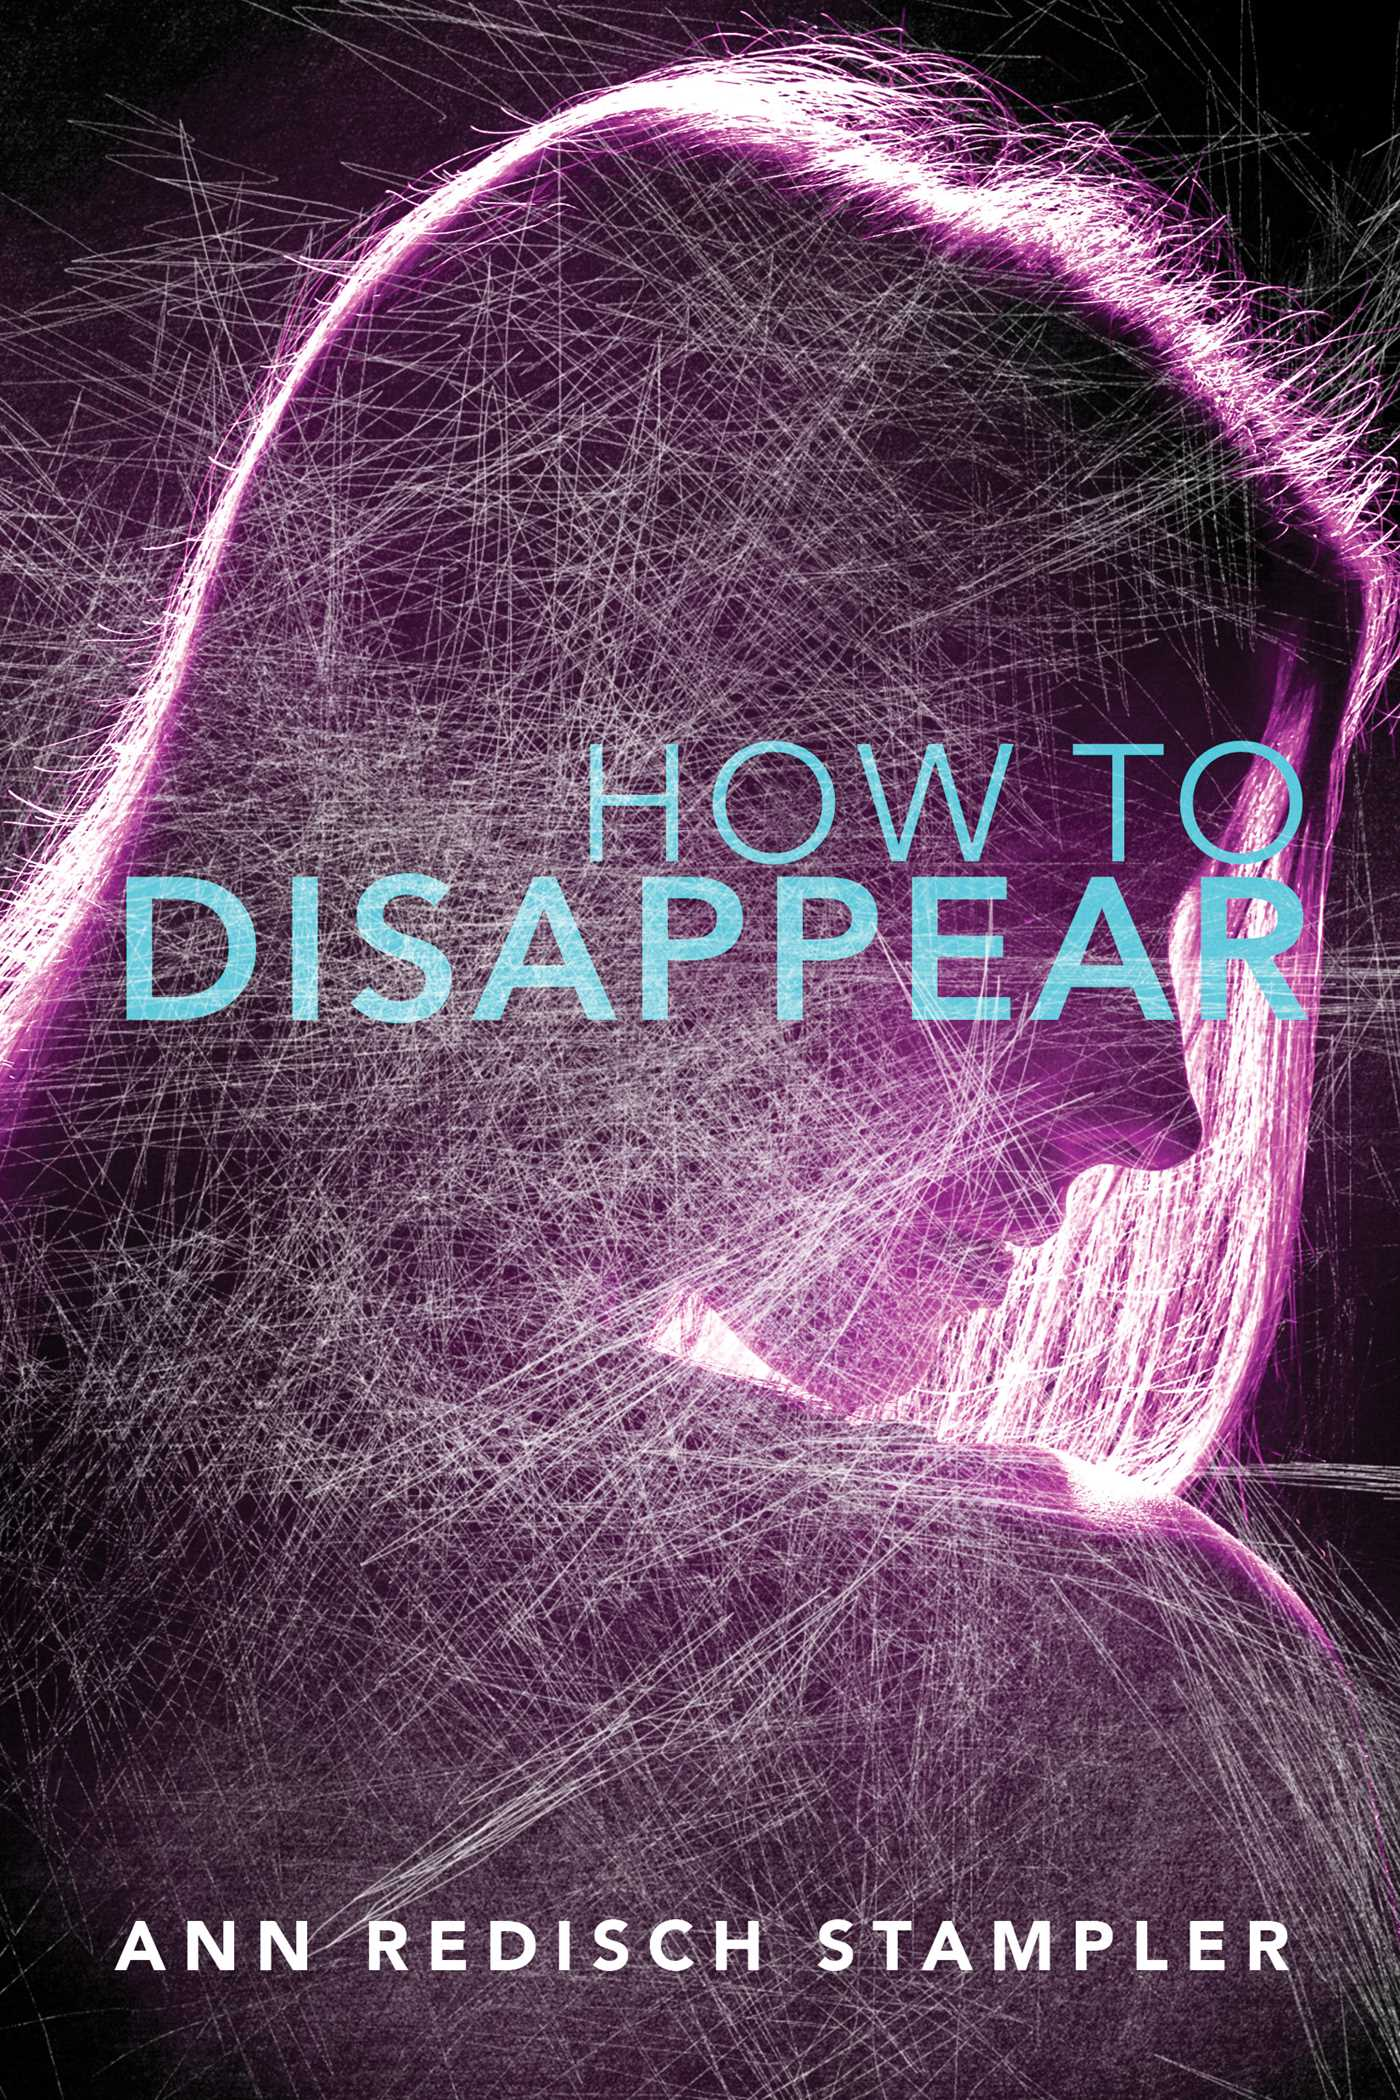 How to disappear 9781481443937 hr